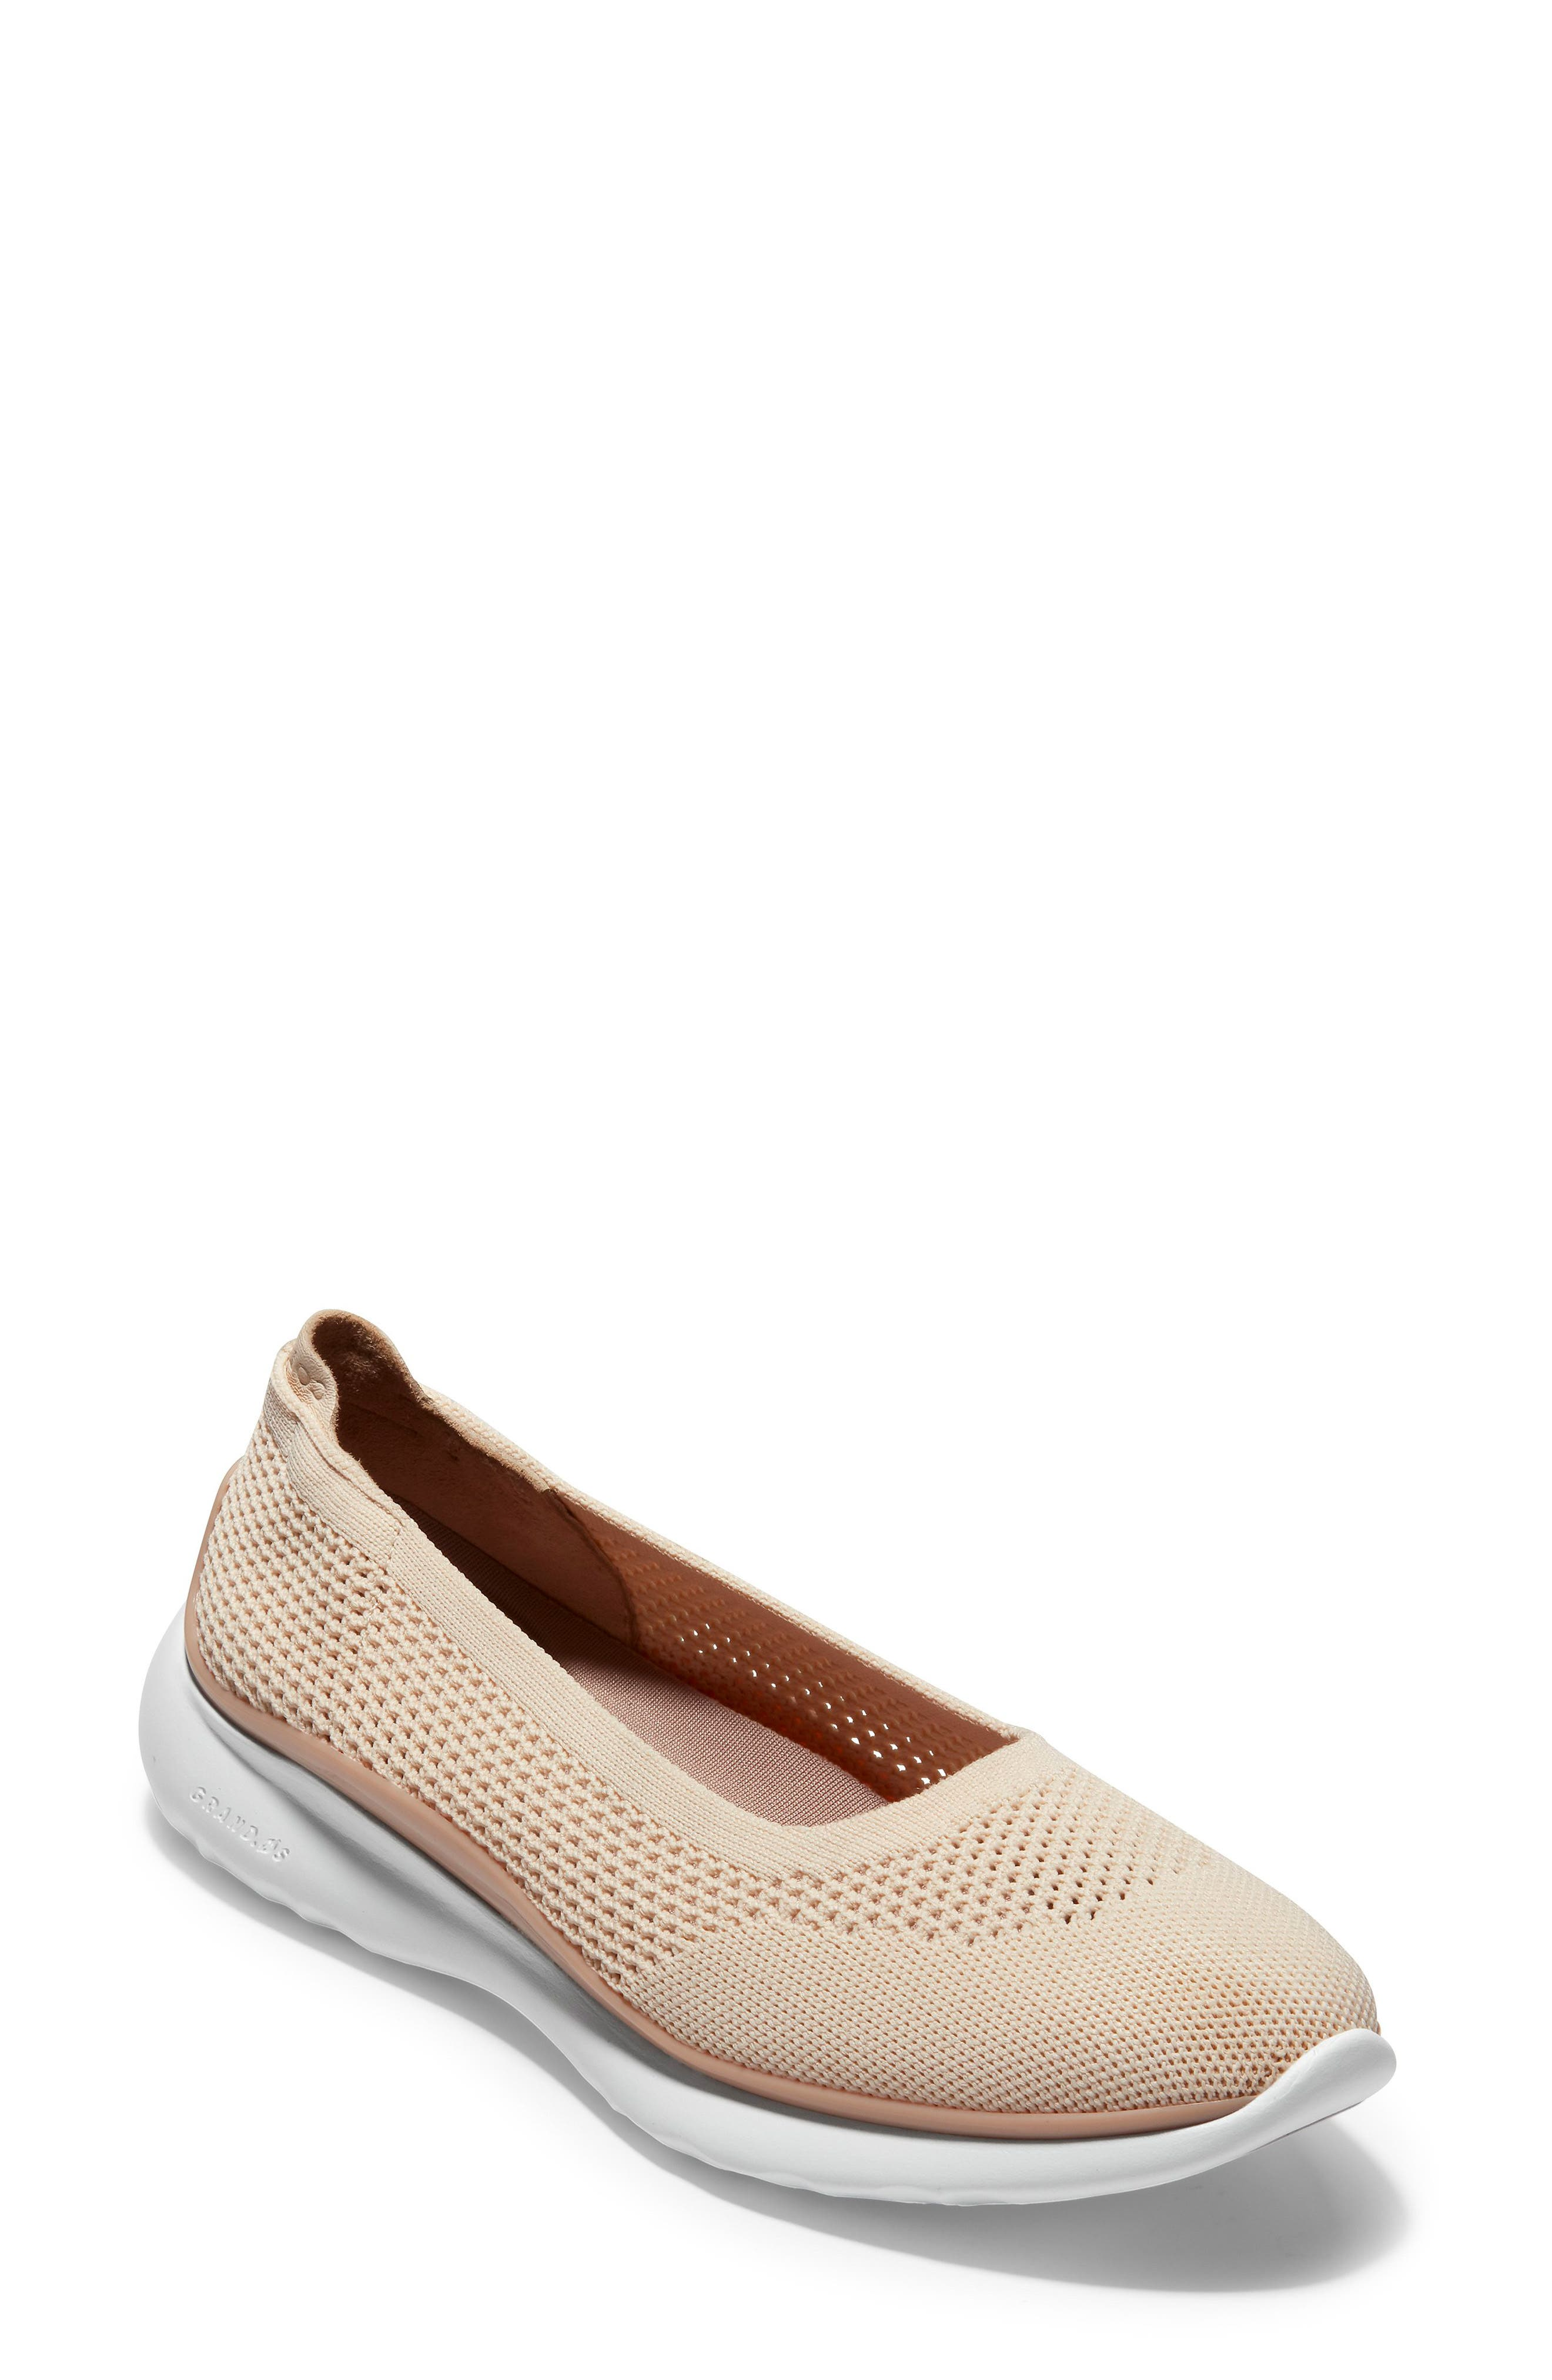 COLE HAAN ZeroGrand Knit Sneaker, Main, color, SAND/ ROSE KNIT/ LEATHER